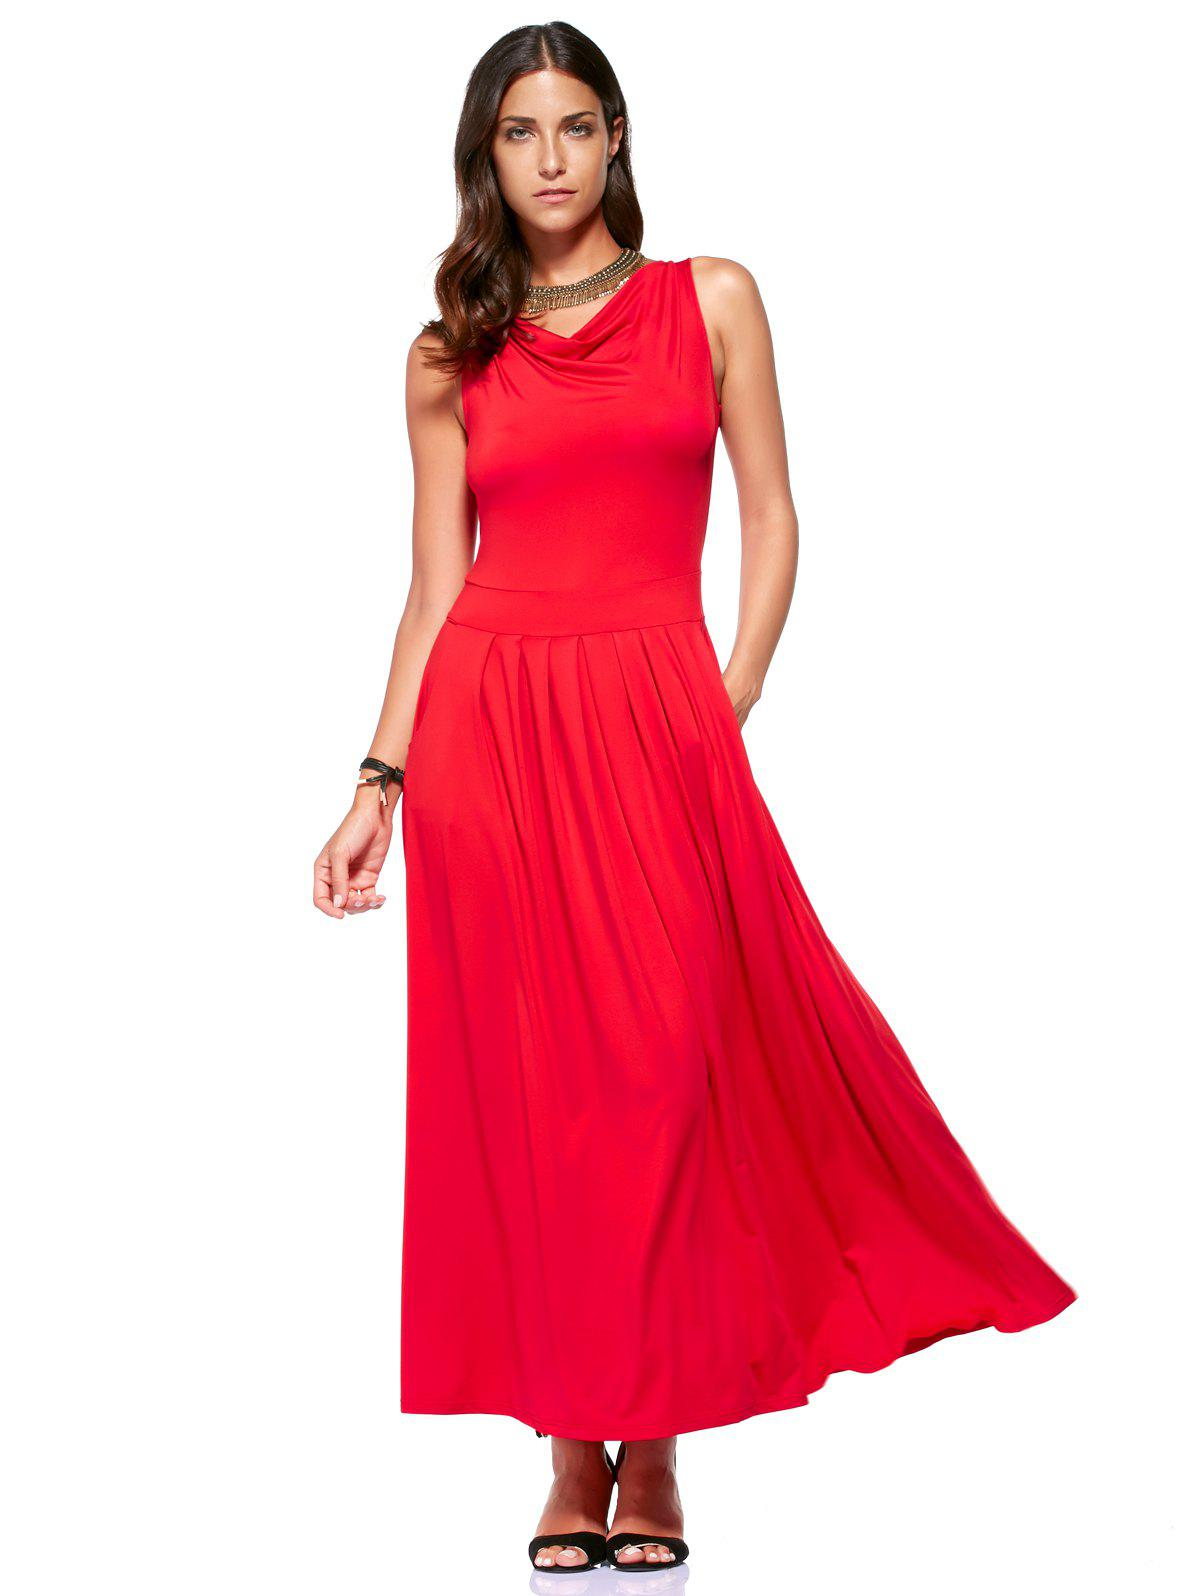 Stylish Women's Cowl Neck Sleeveless Backless Solid Color Dress - RED 6XL